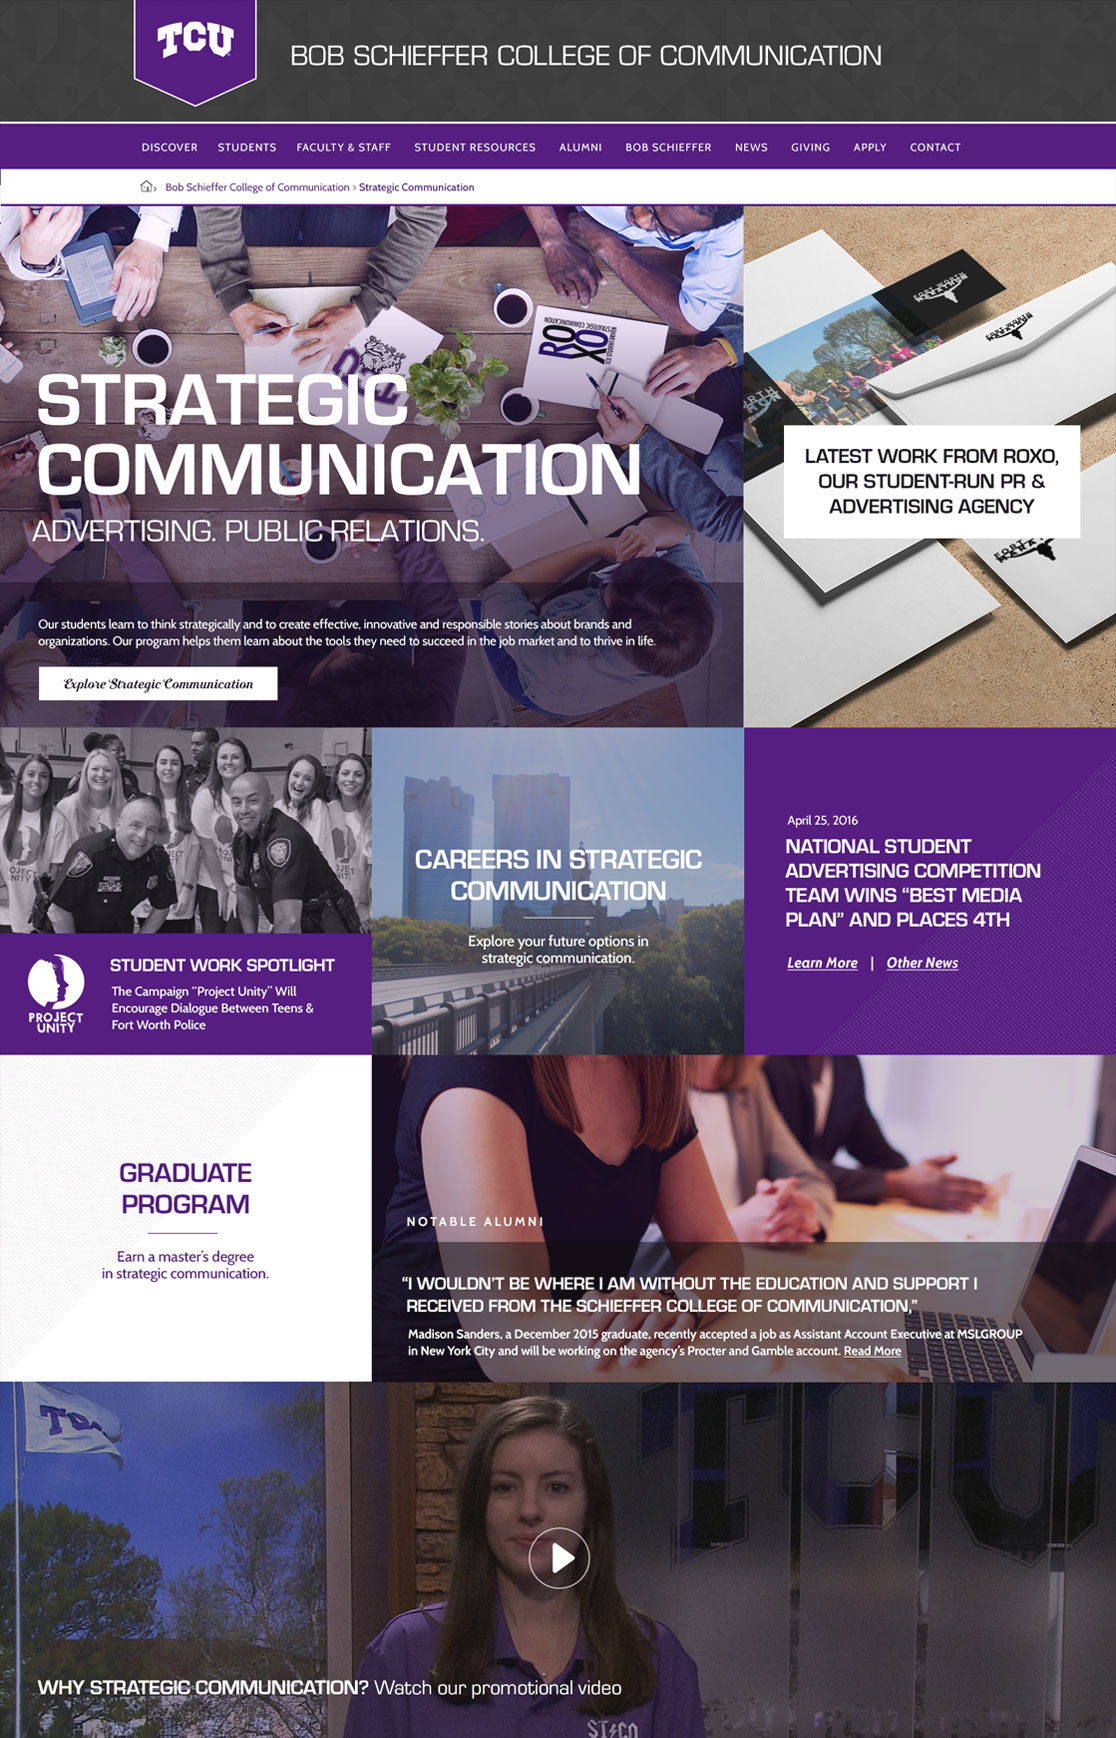 TCU College of Communication Website Preview School of Strategic Communication